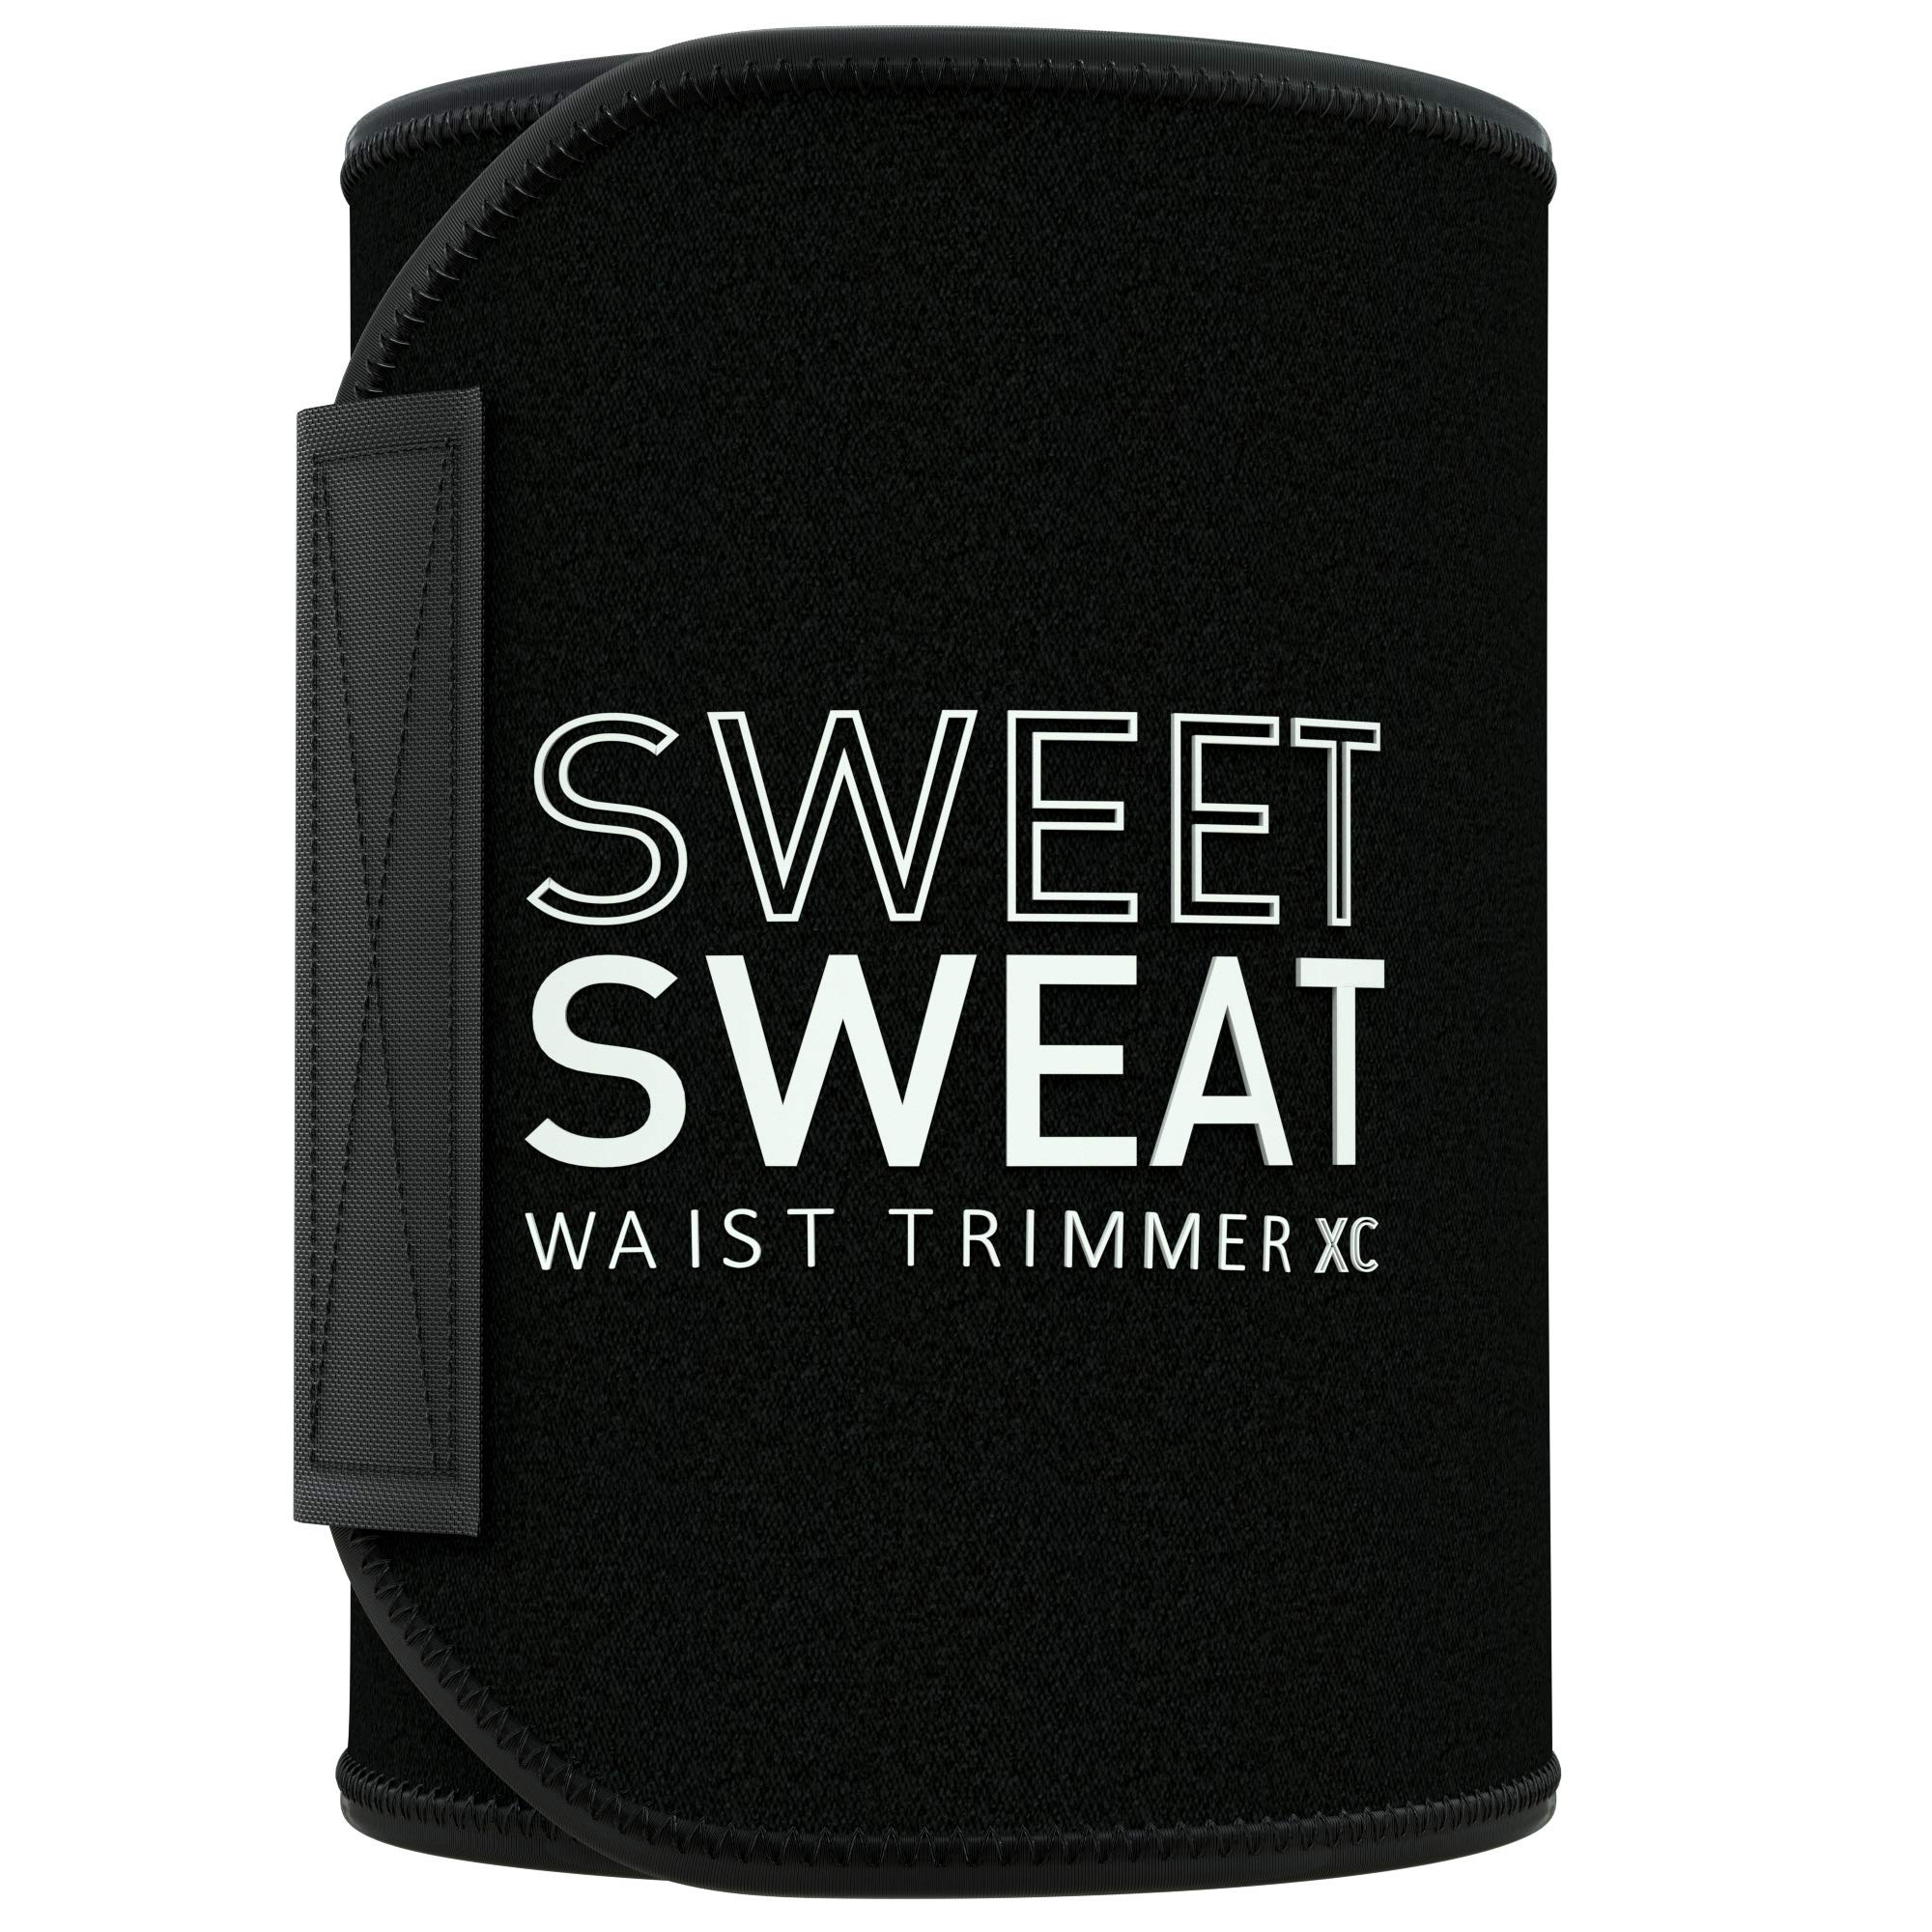 Sweet Sweat Waist Trimmer 'Xtra-Coverage' for Men & Women | Premium Waist Trainer Sauna Suit with More Torso Coverage for a Better Sweat!